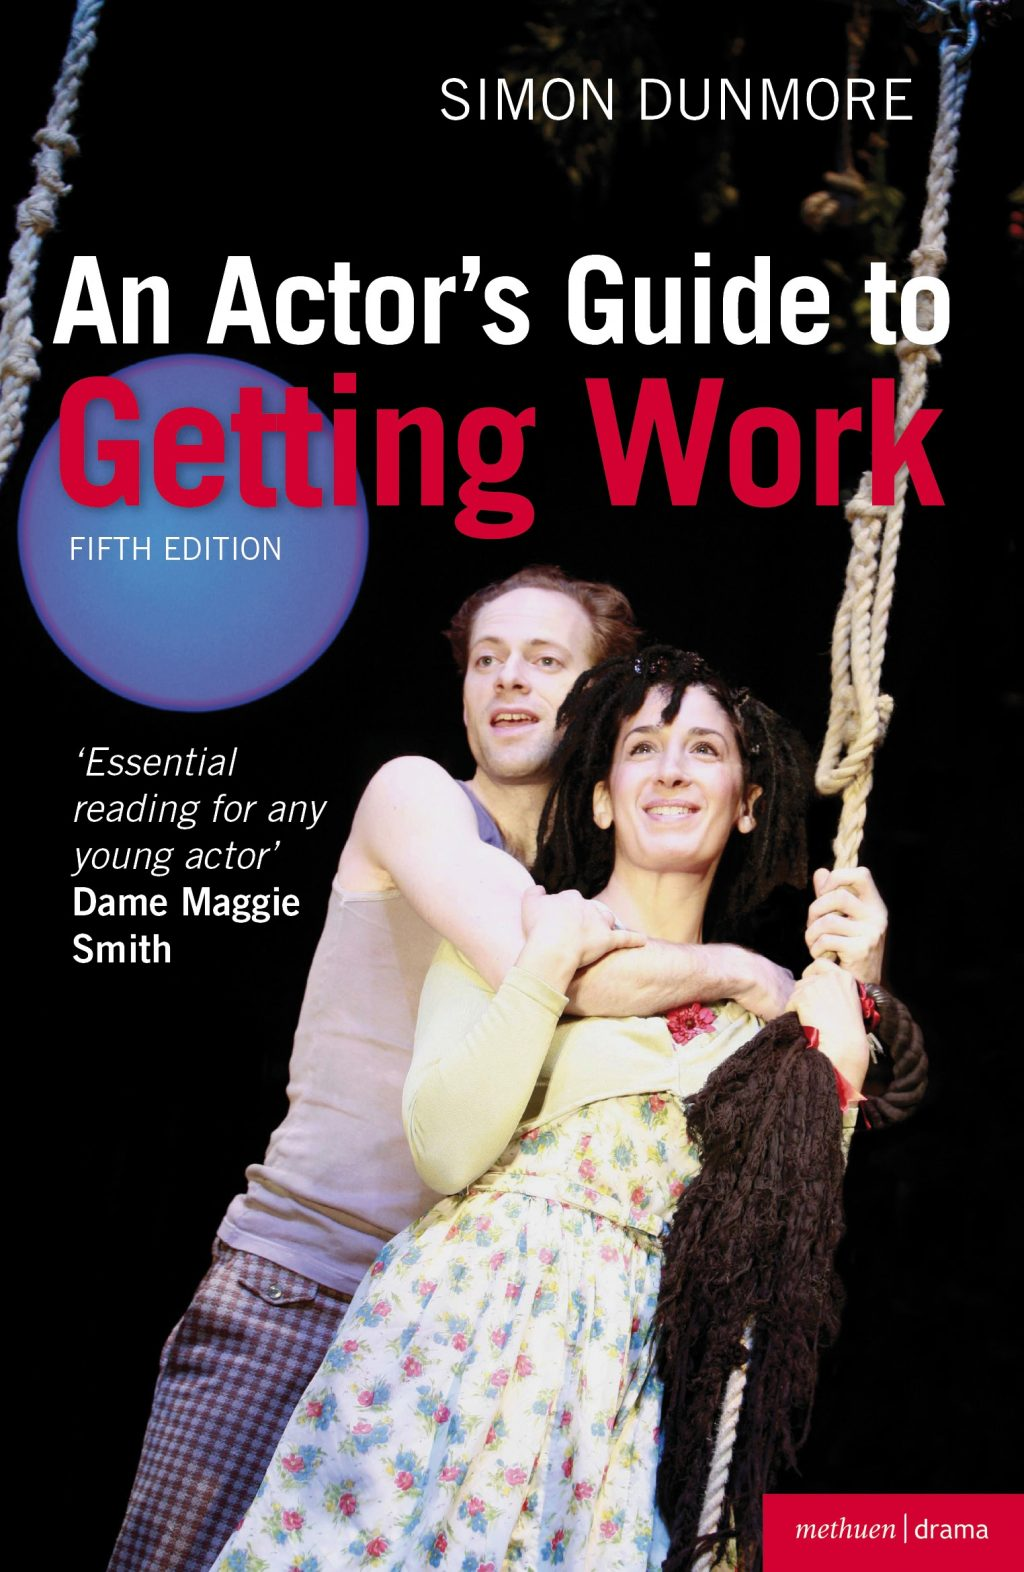 1 – Actors guide to getting work